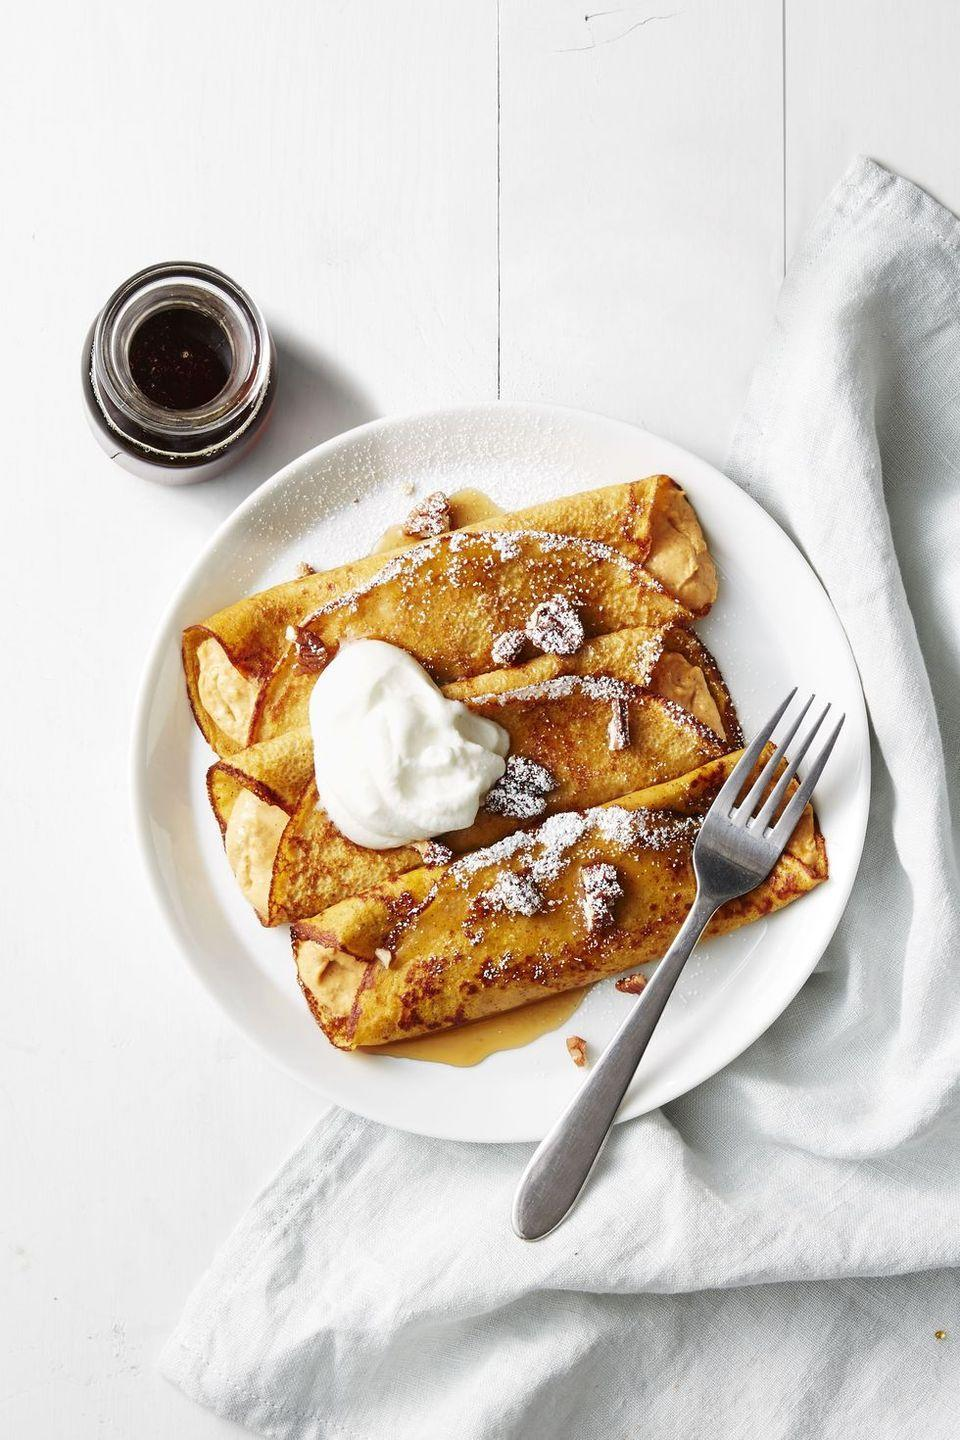 "<p>This classic French brunch entree is decadent, so we wouldn't mind seeing it on our plates immediately following the Turkey Day feast. Agree?</p><p> <em><a href=""https://www.goodhousekeeping.com/food-recipes/a41238/pumpkin-cheesecake-crepes-recipe/"" rel=""nofollow noopener"" target=""_blank"" data-ylk=""slk:Get the recipe for Pumpkin Cheesecake Crepes »"" class=""link rapid-noclick-resp"">Get the recipe for Pumpkin Cheesecake Crepes »</a></em> </p>"